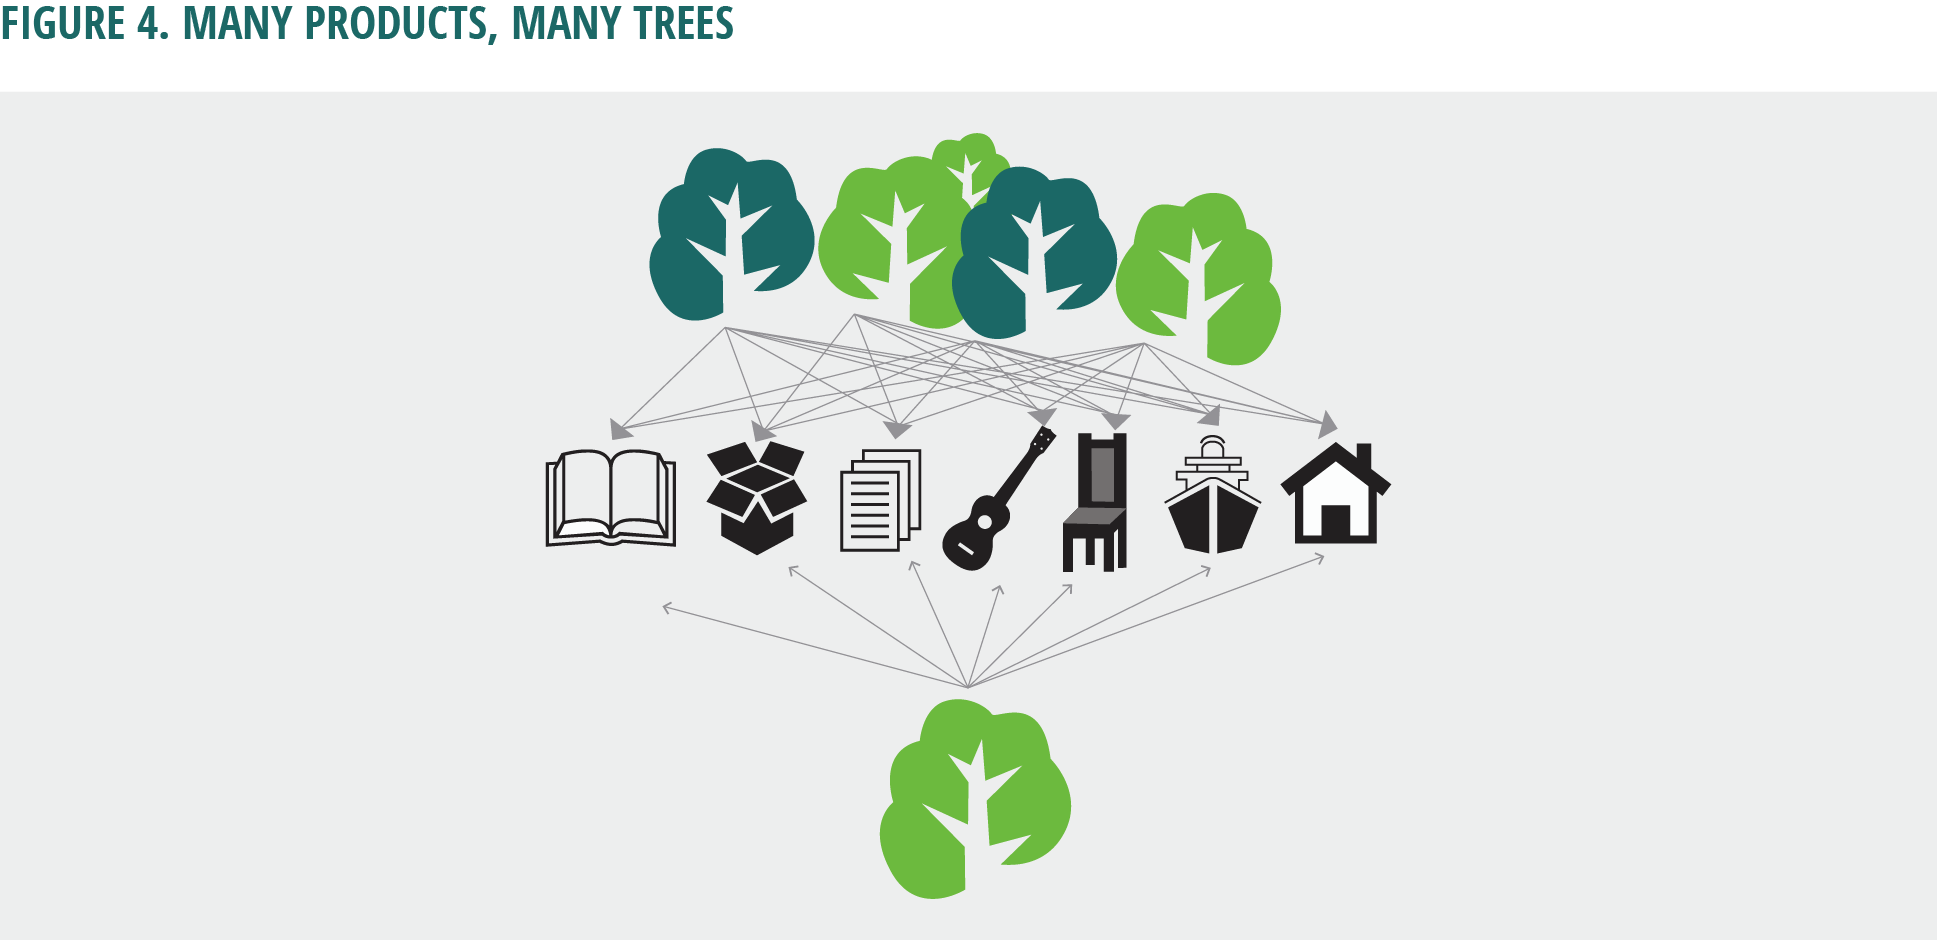 Figure 4. Many products, many trees